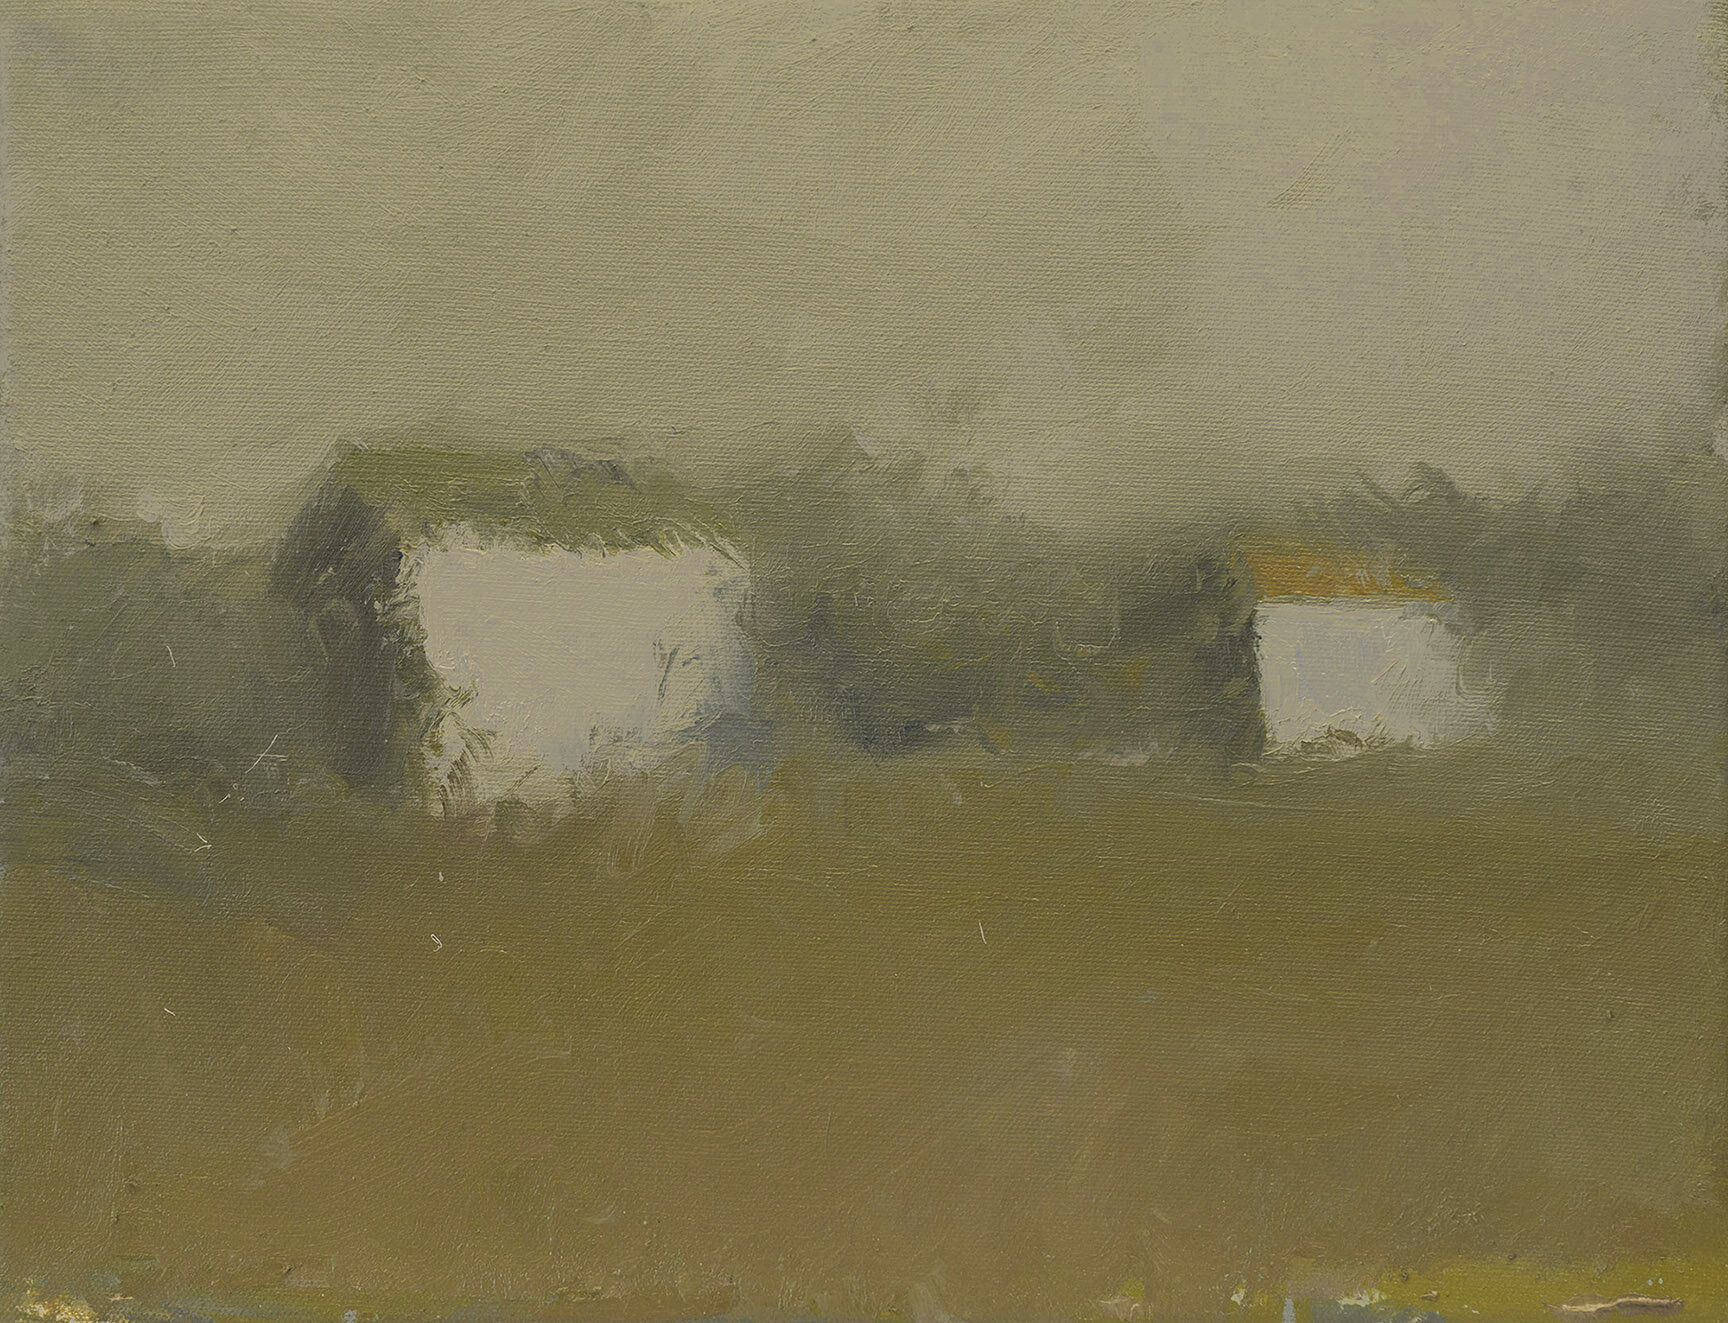 Farm Sheds,  11 x 14 inches, Oil on Canvas